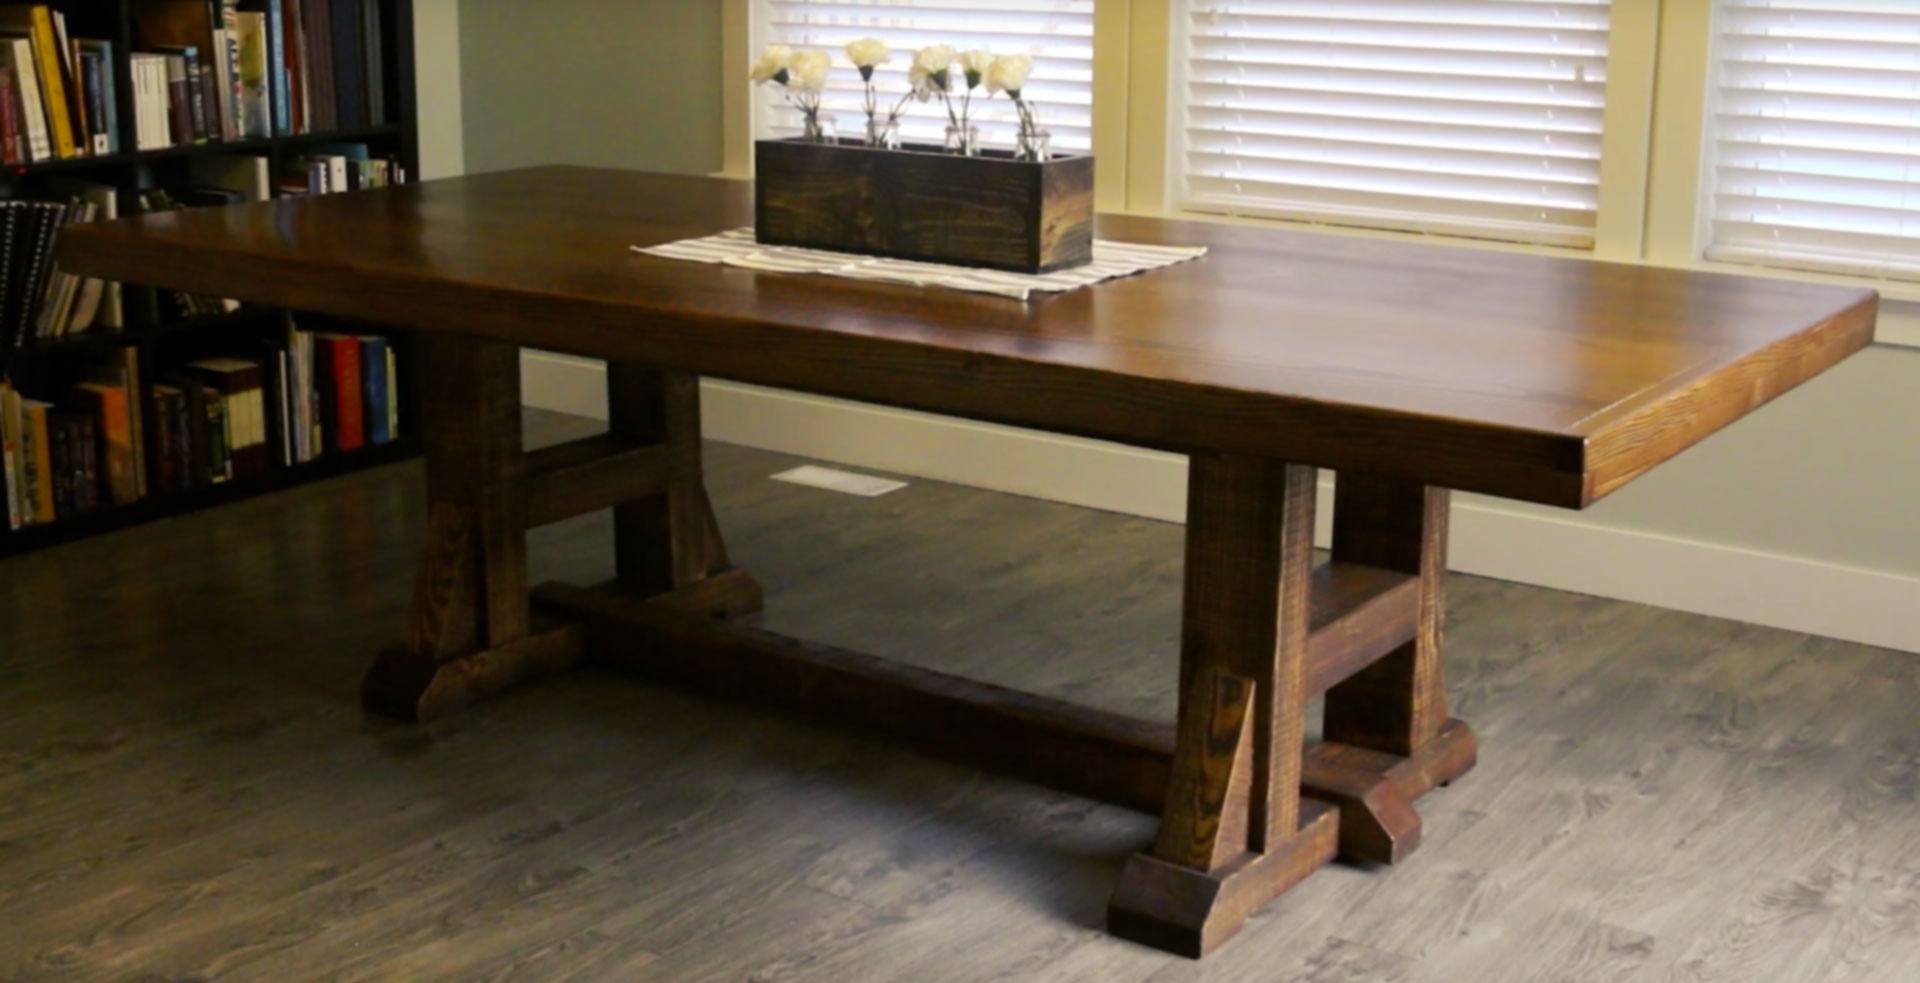 DIY Kitchen / Dining Table U2013 Pottery Barn Inspired U2013 DIY Home Improvement  And Projects | LRN2DIY